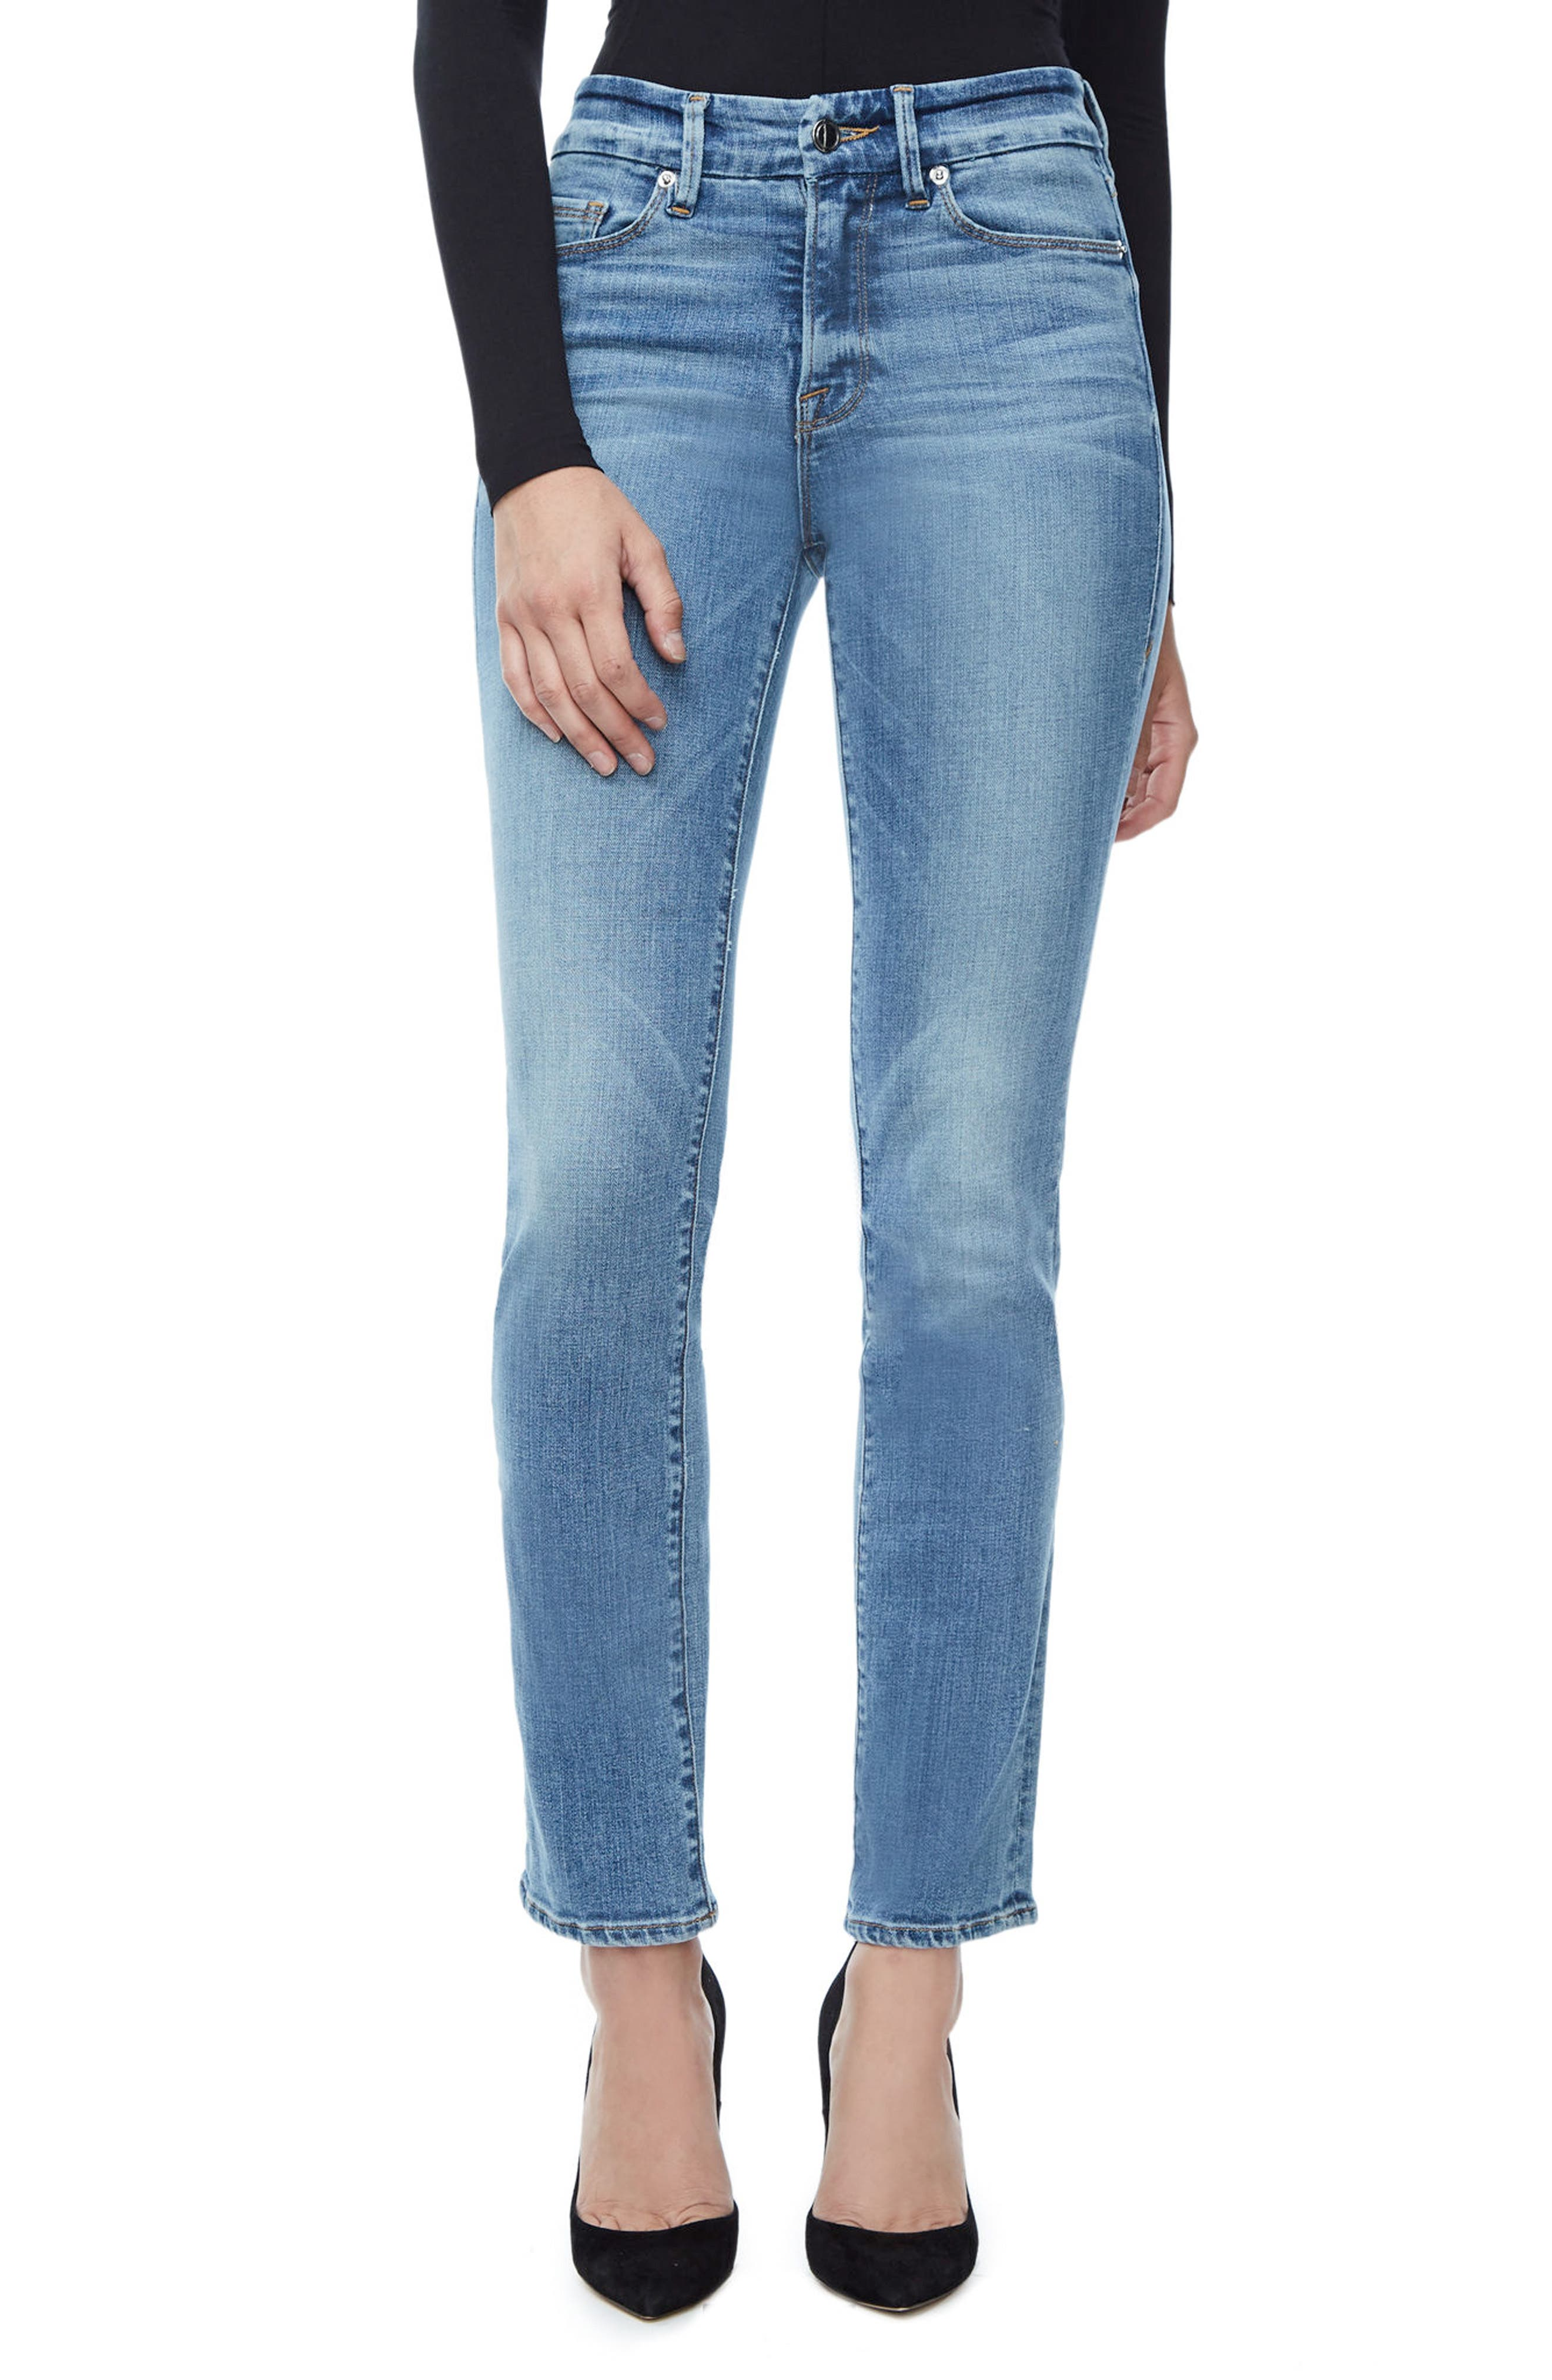 Alternate Image 1 Selected - Good American Good Straight High Rise Jeans (Blue 087) (Regular & Plus Size)